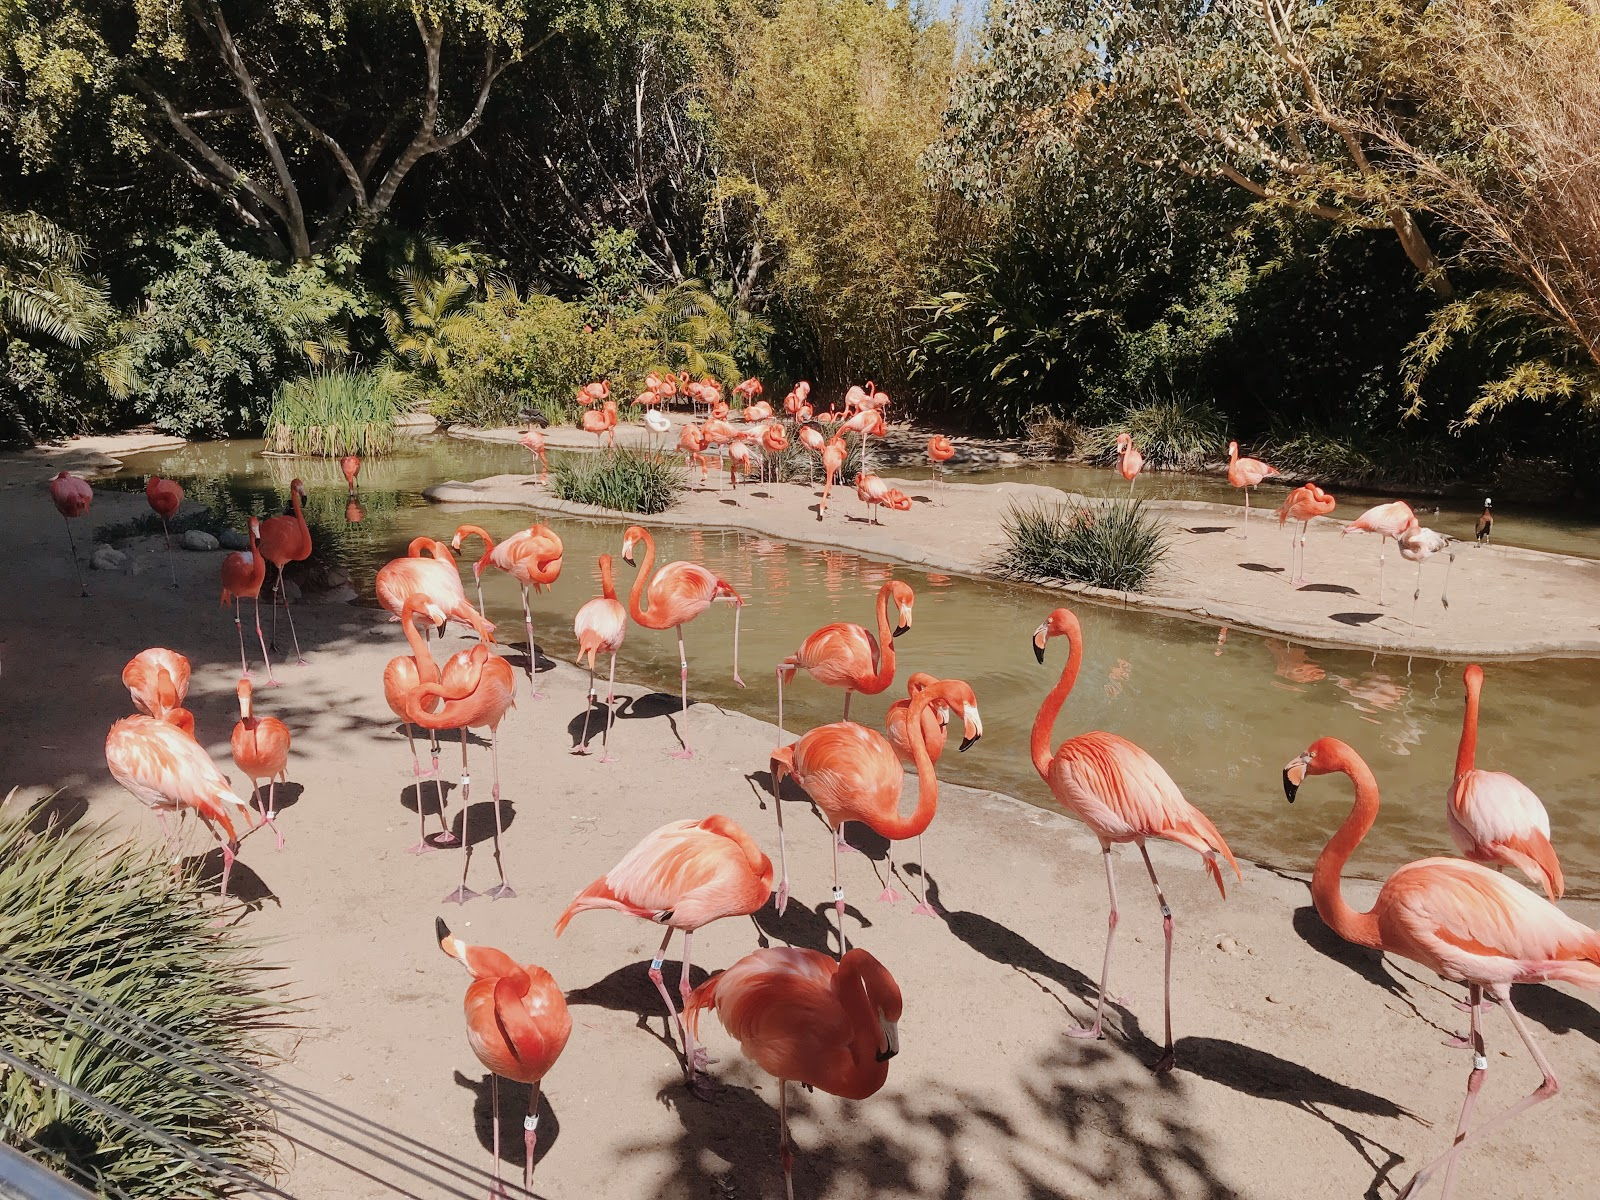 flamingos at the San Diego Zoo | Love, Lenore